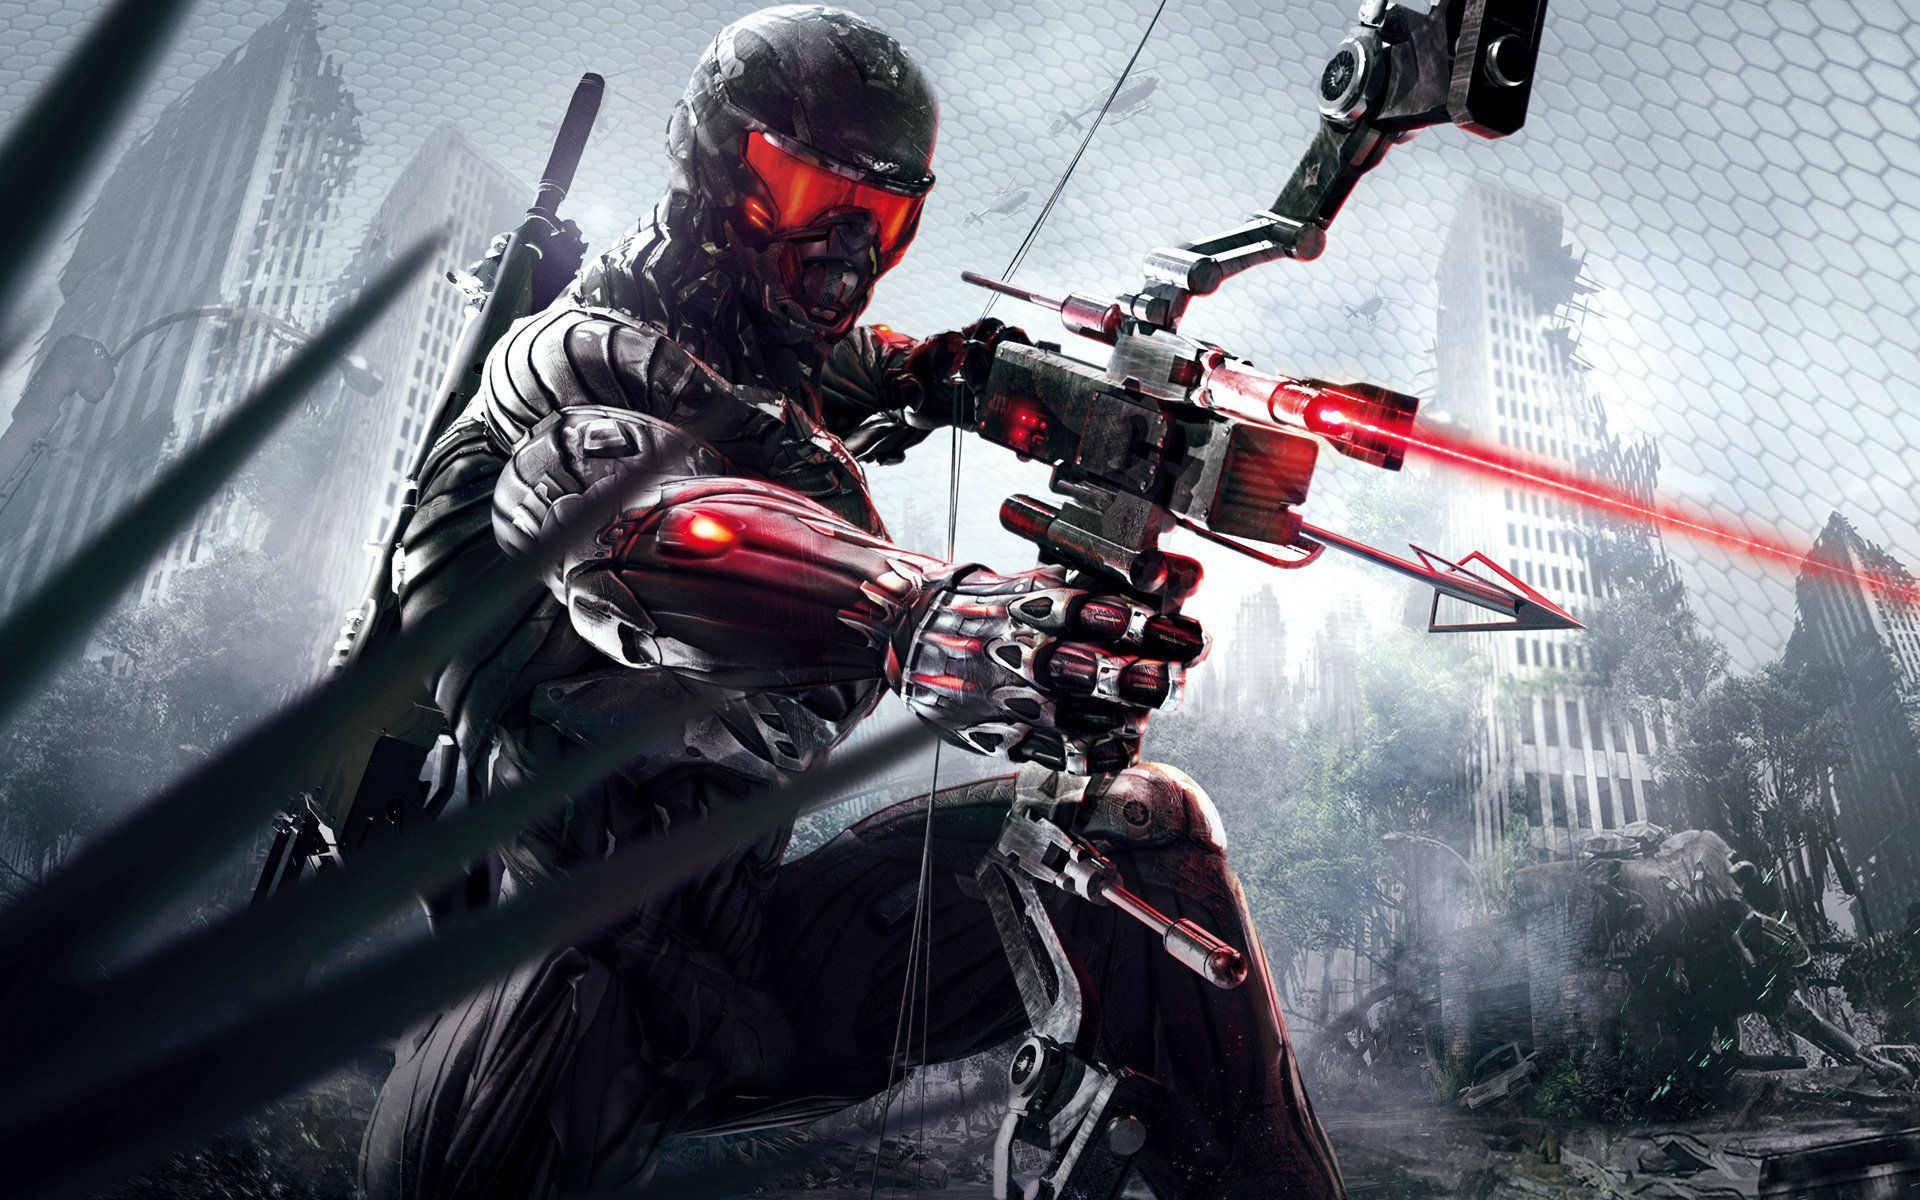 Crysis 3 Wallpapers - Full HD Wallpaper Search